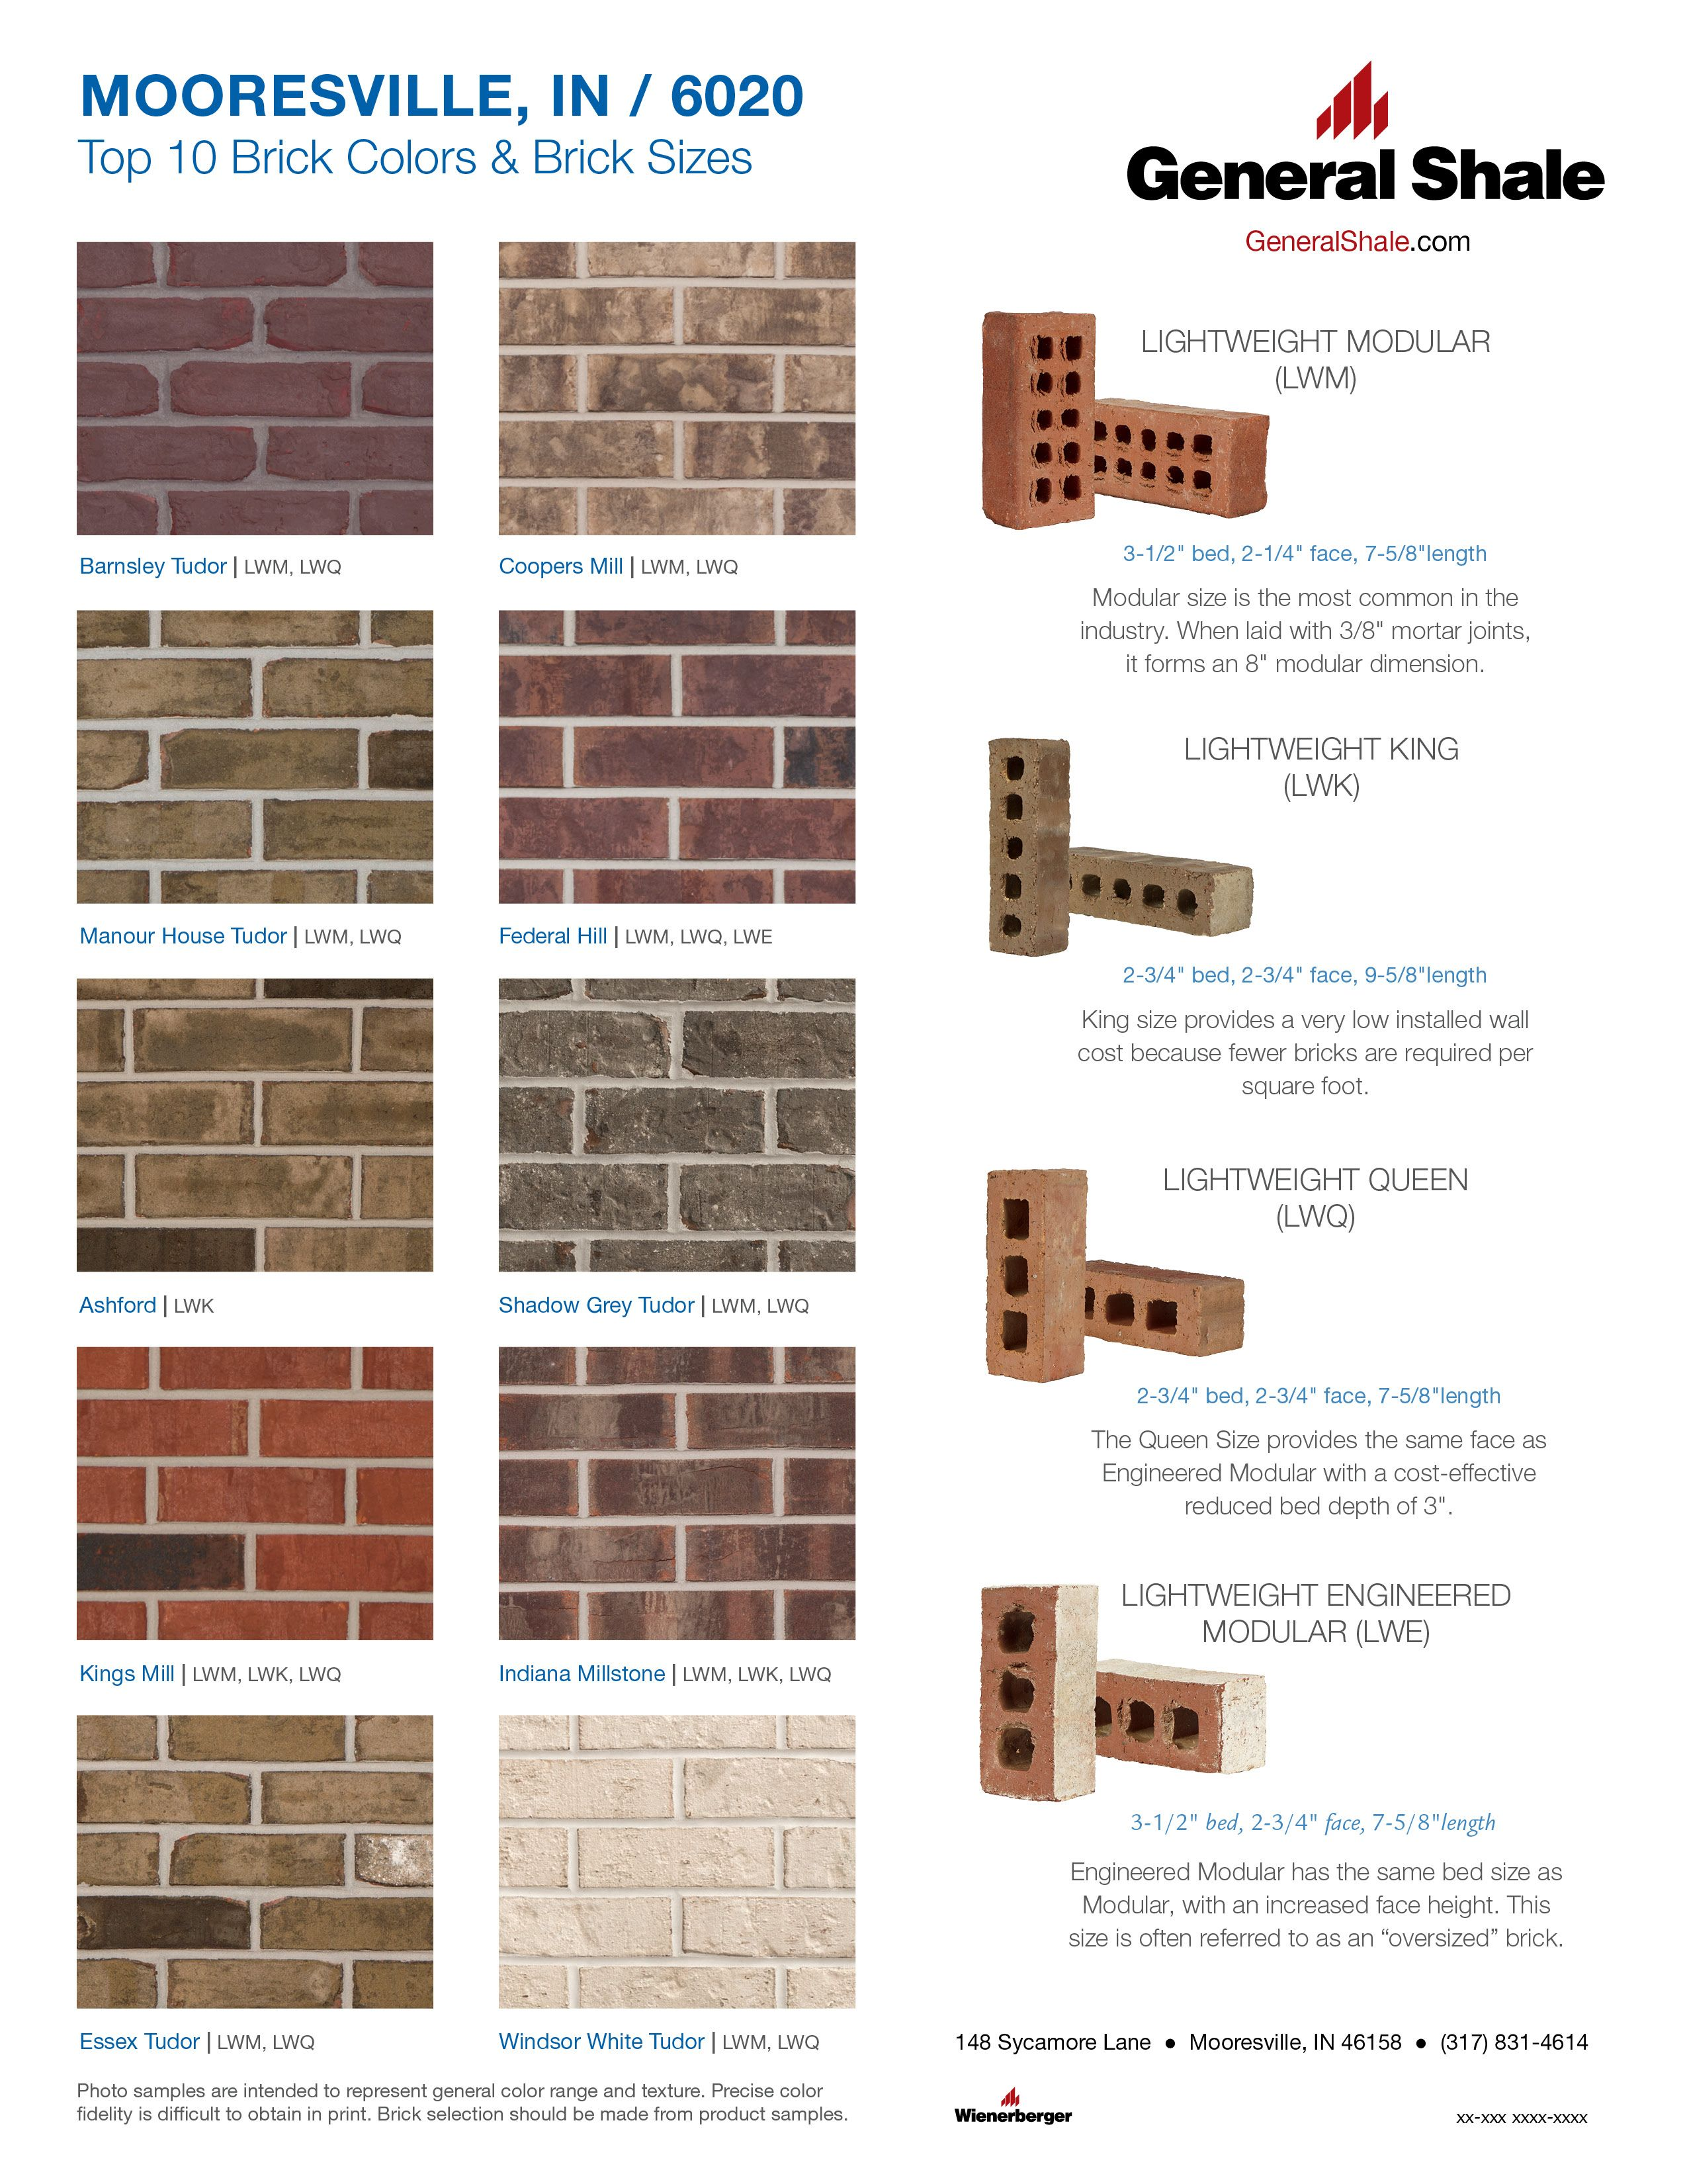 Mooresville In Top 10 Brick Colors